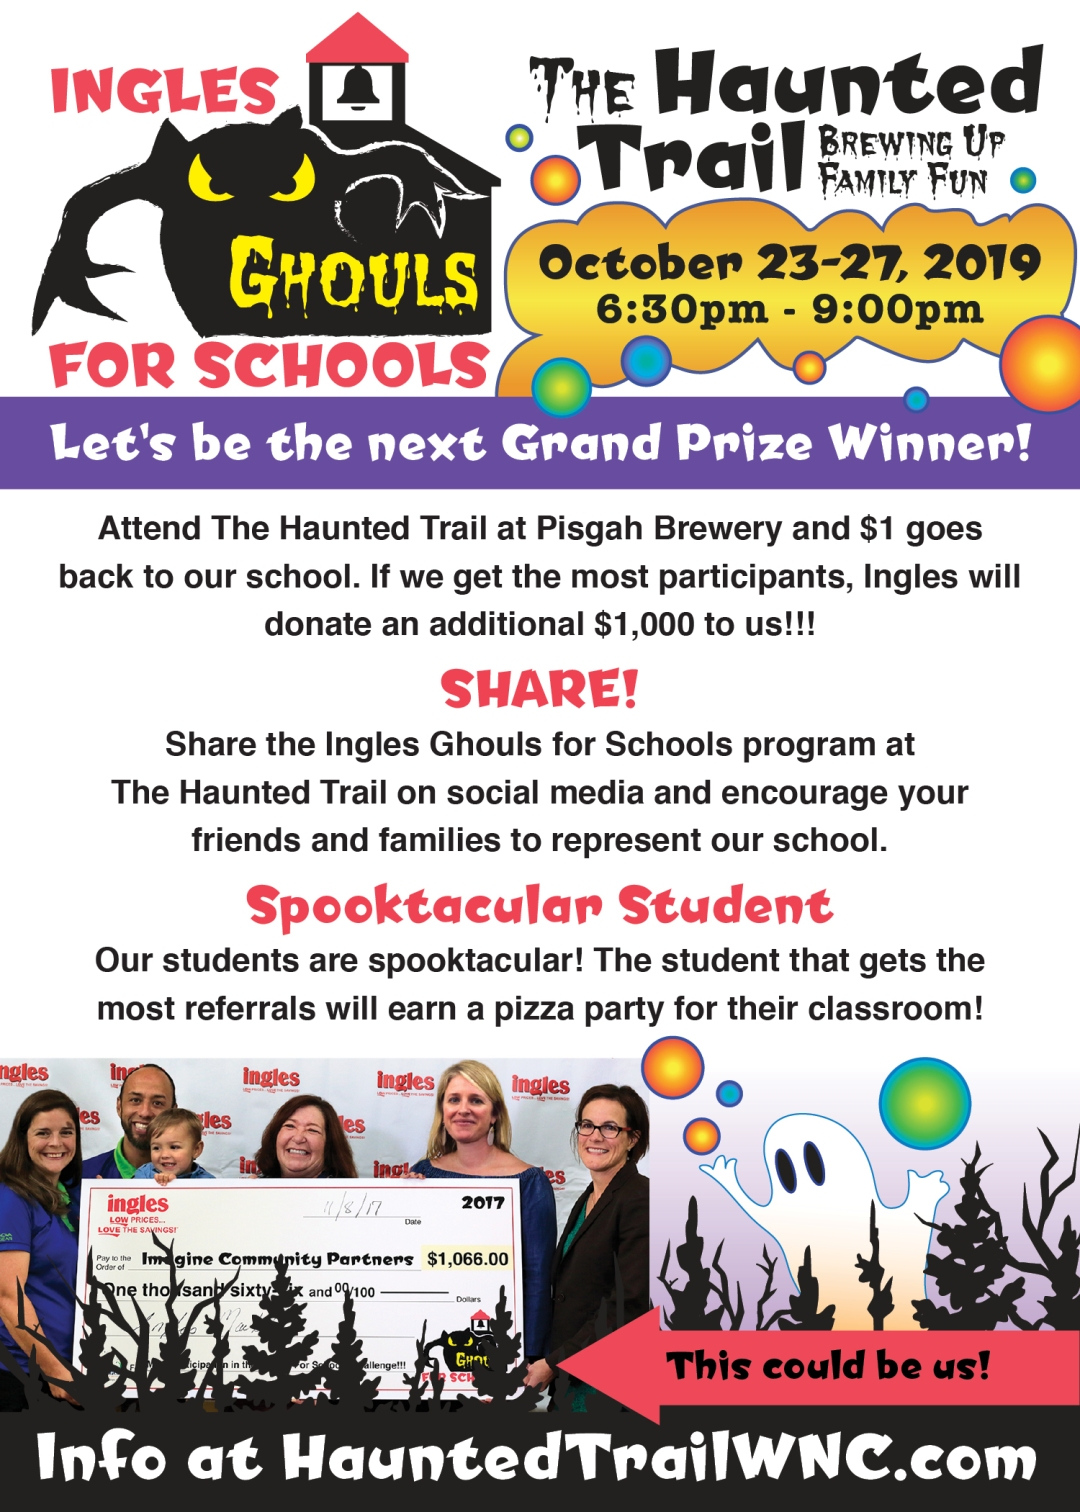 Ingles-GhoulsforSchools-Announcement